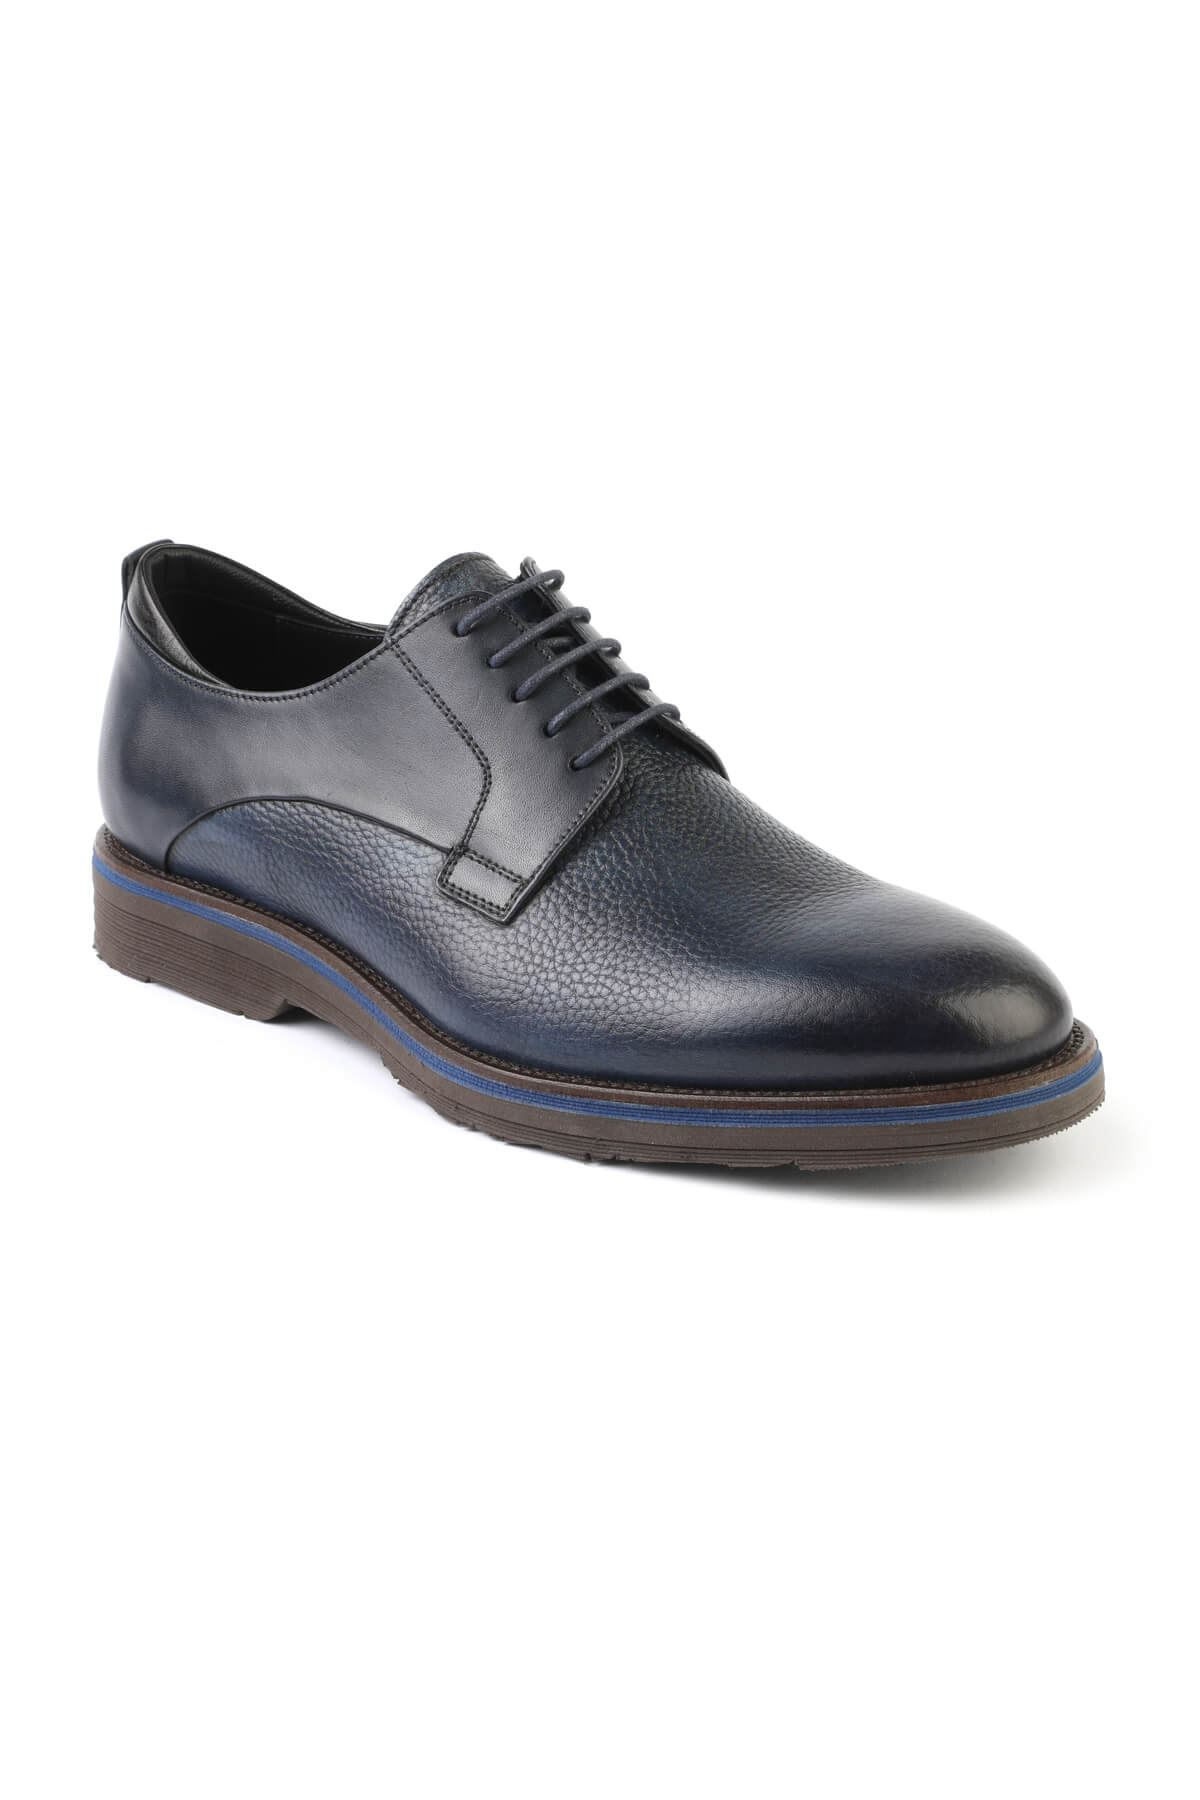 Libero T1280 Navy Blue Casual Shoes